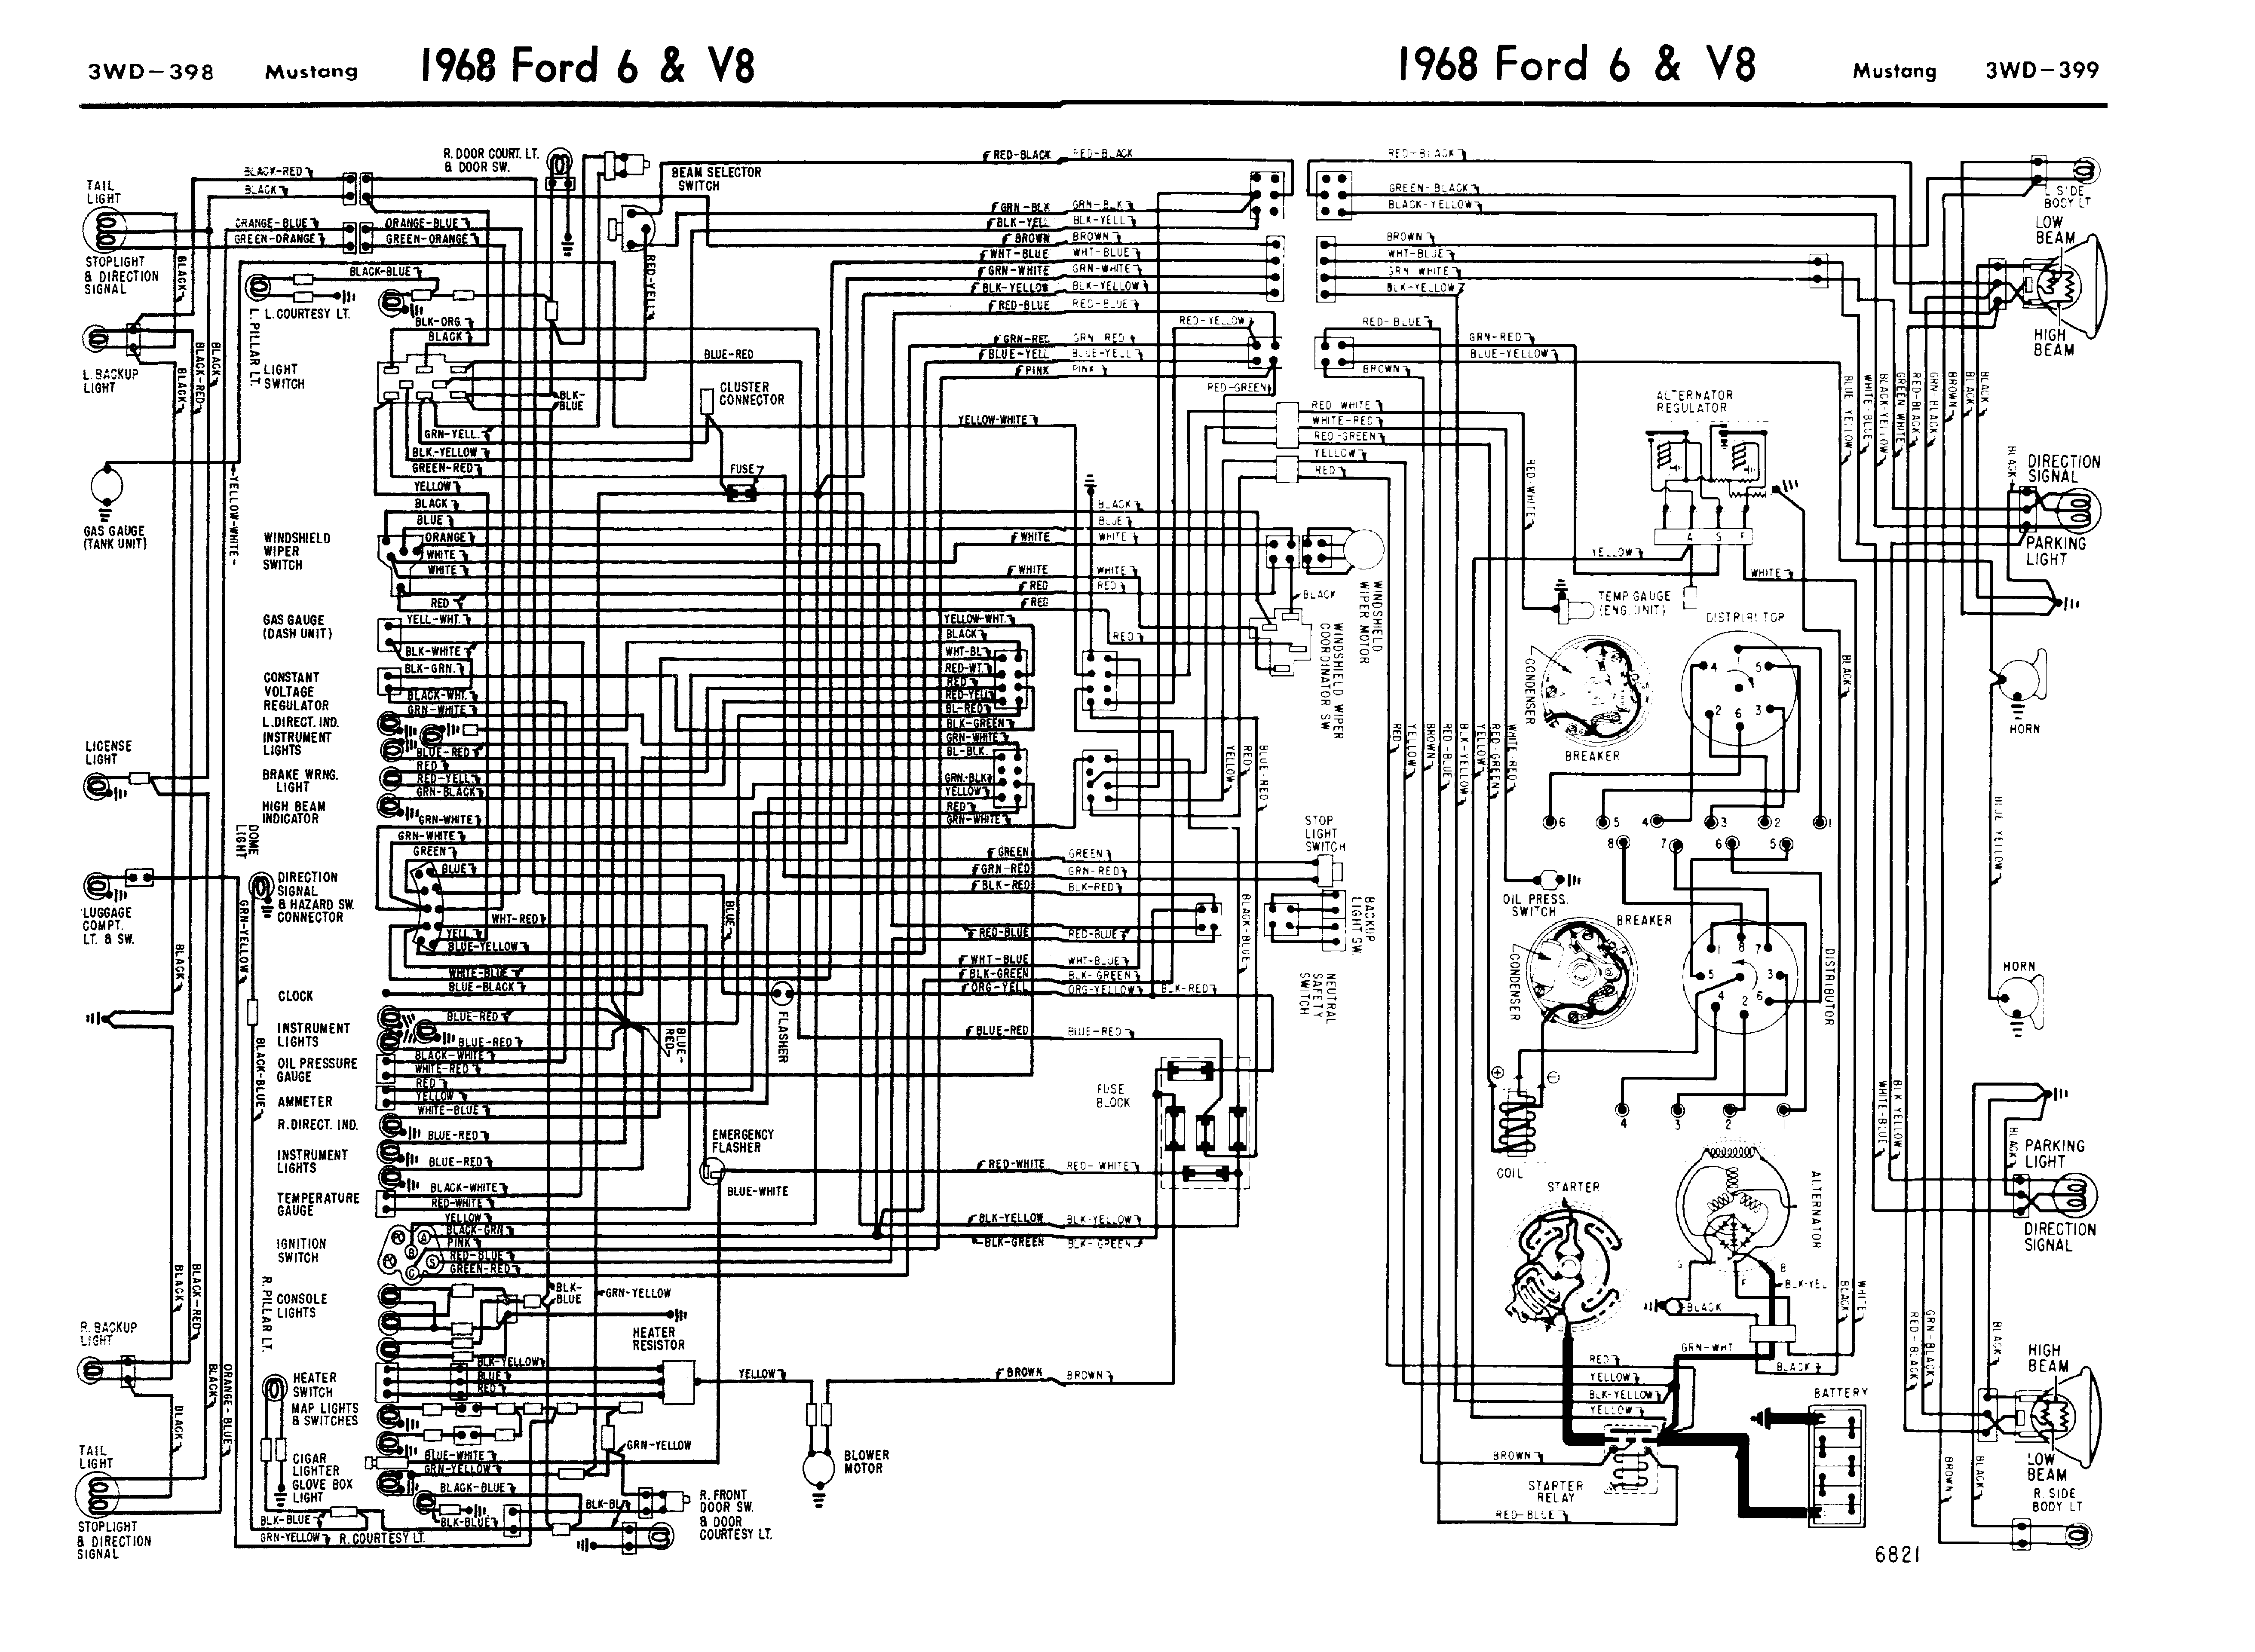 68mustang_wiring_guide 1968 mustang wiring diagrams evolving software 2001 mustang wiring harness at readyjetset.co